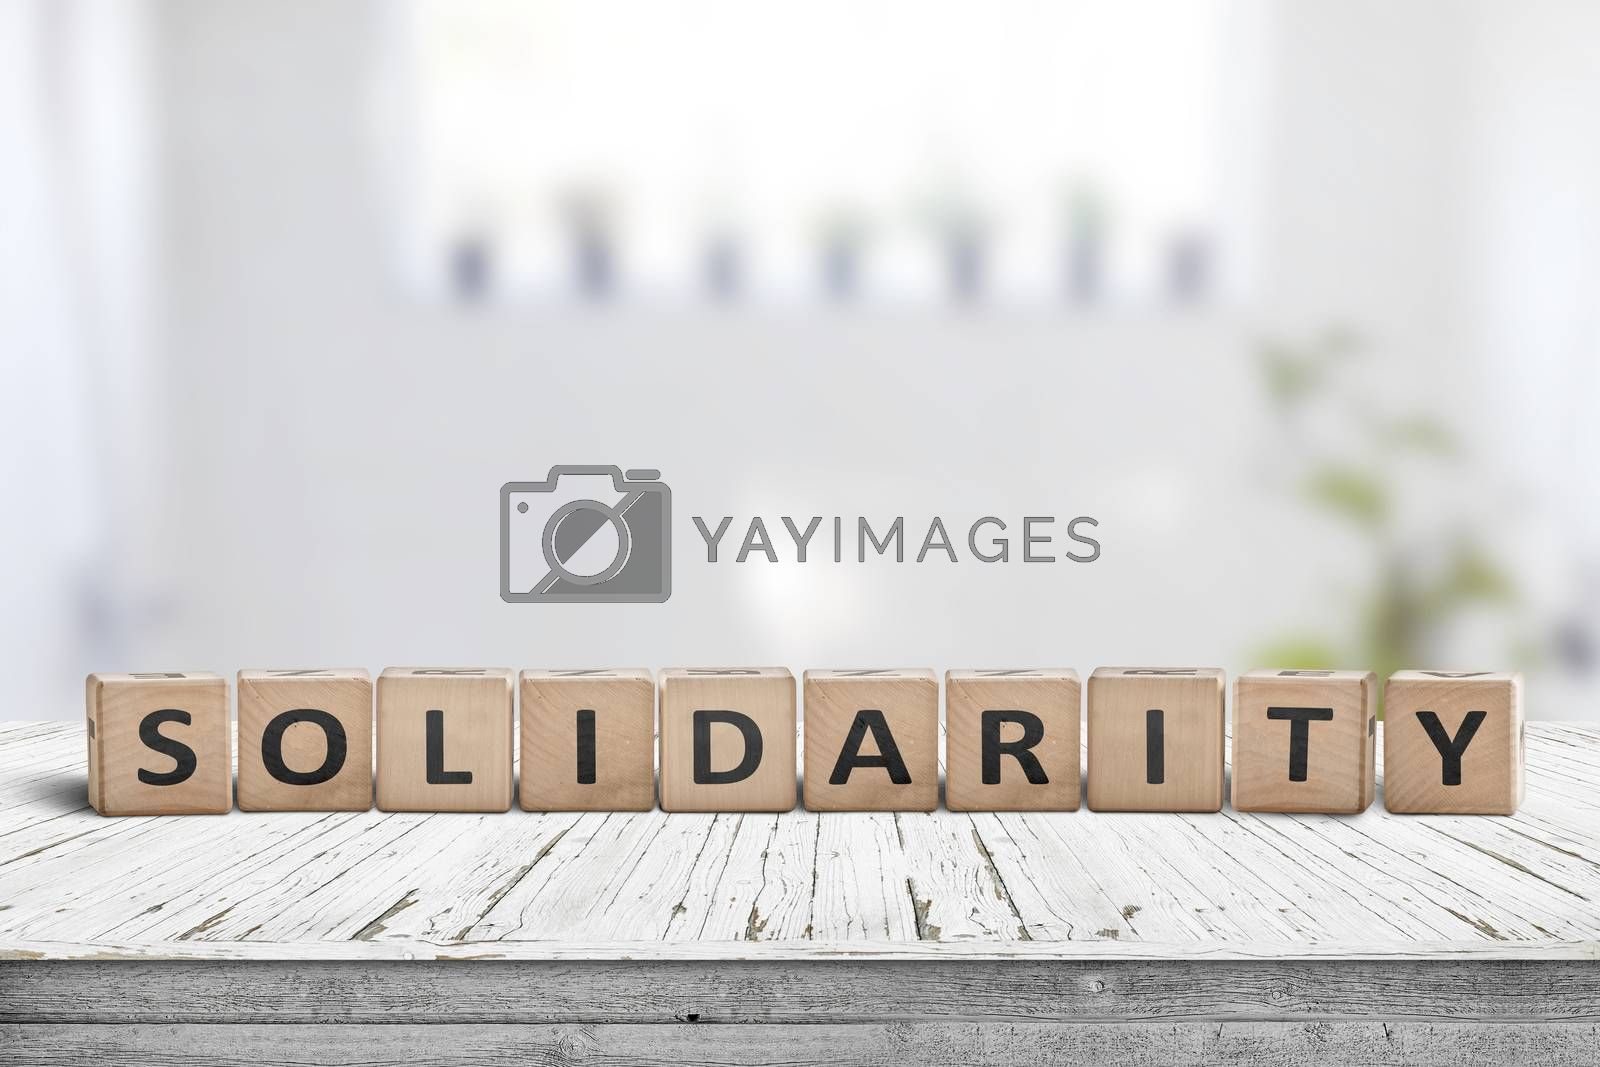 Solidarity message on a wooden table in a bright living room